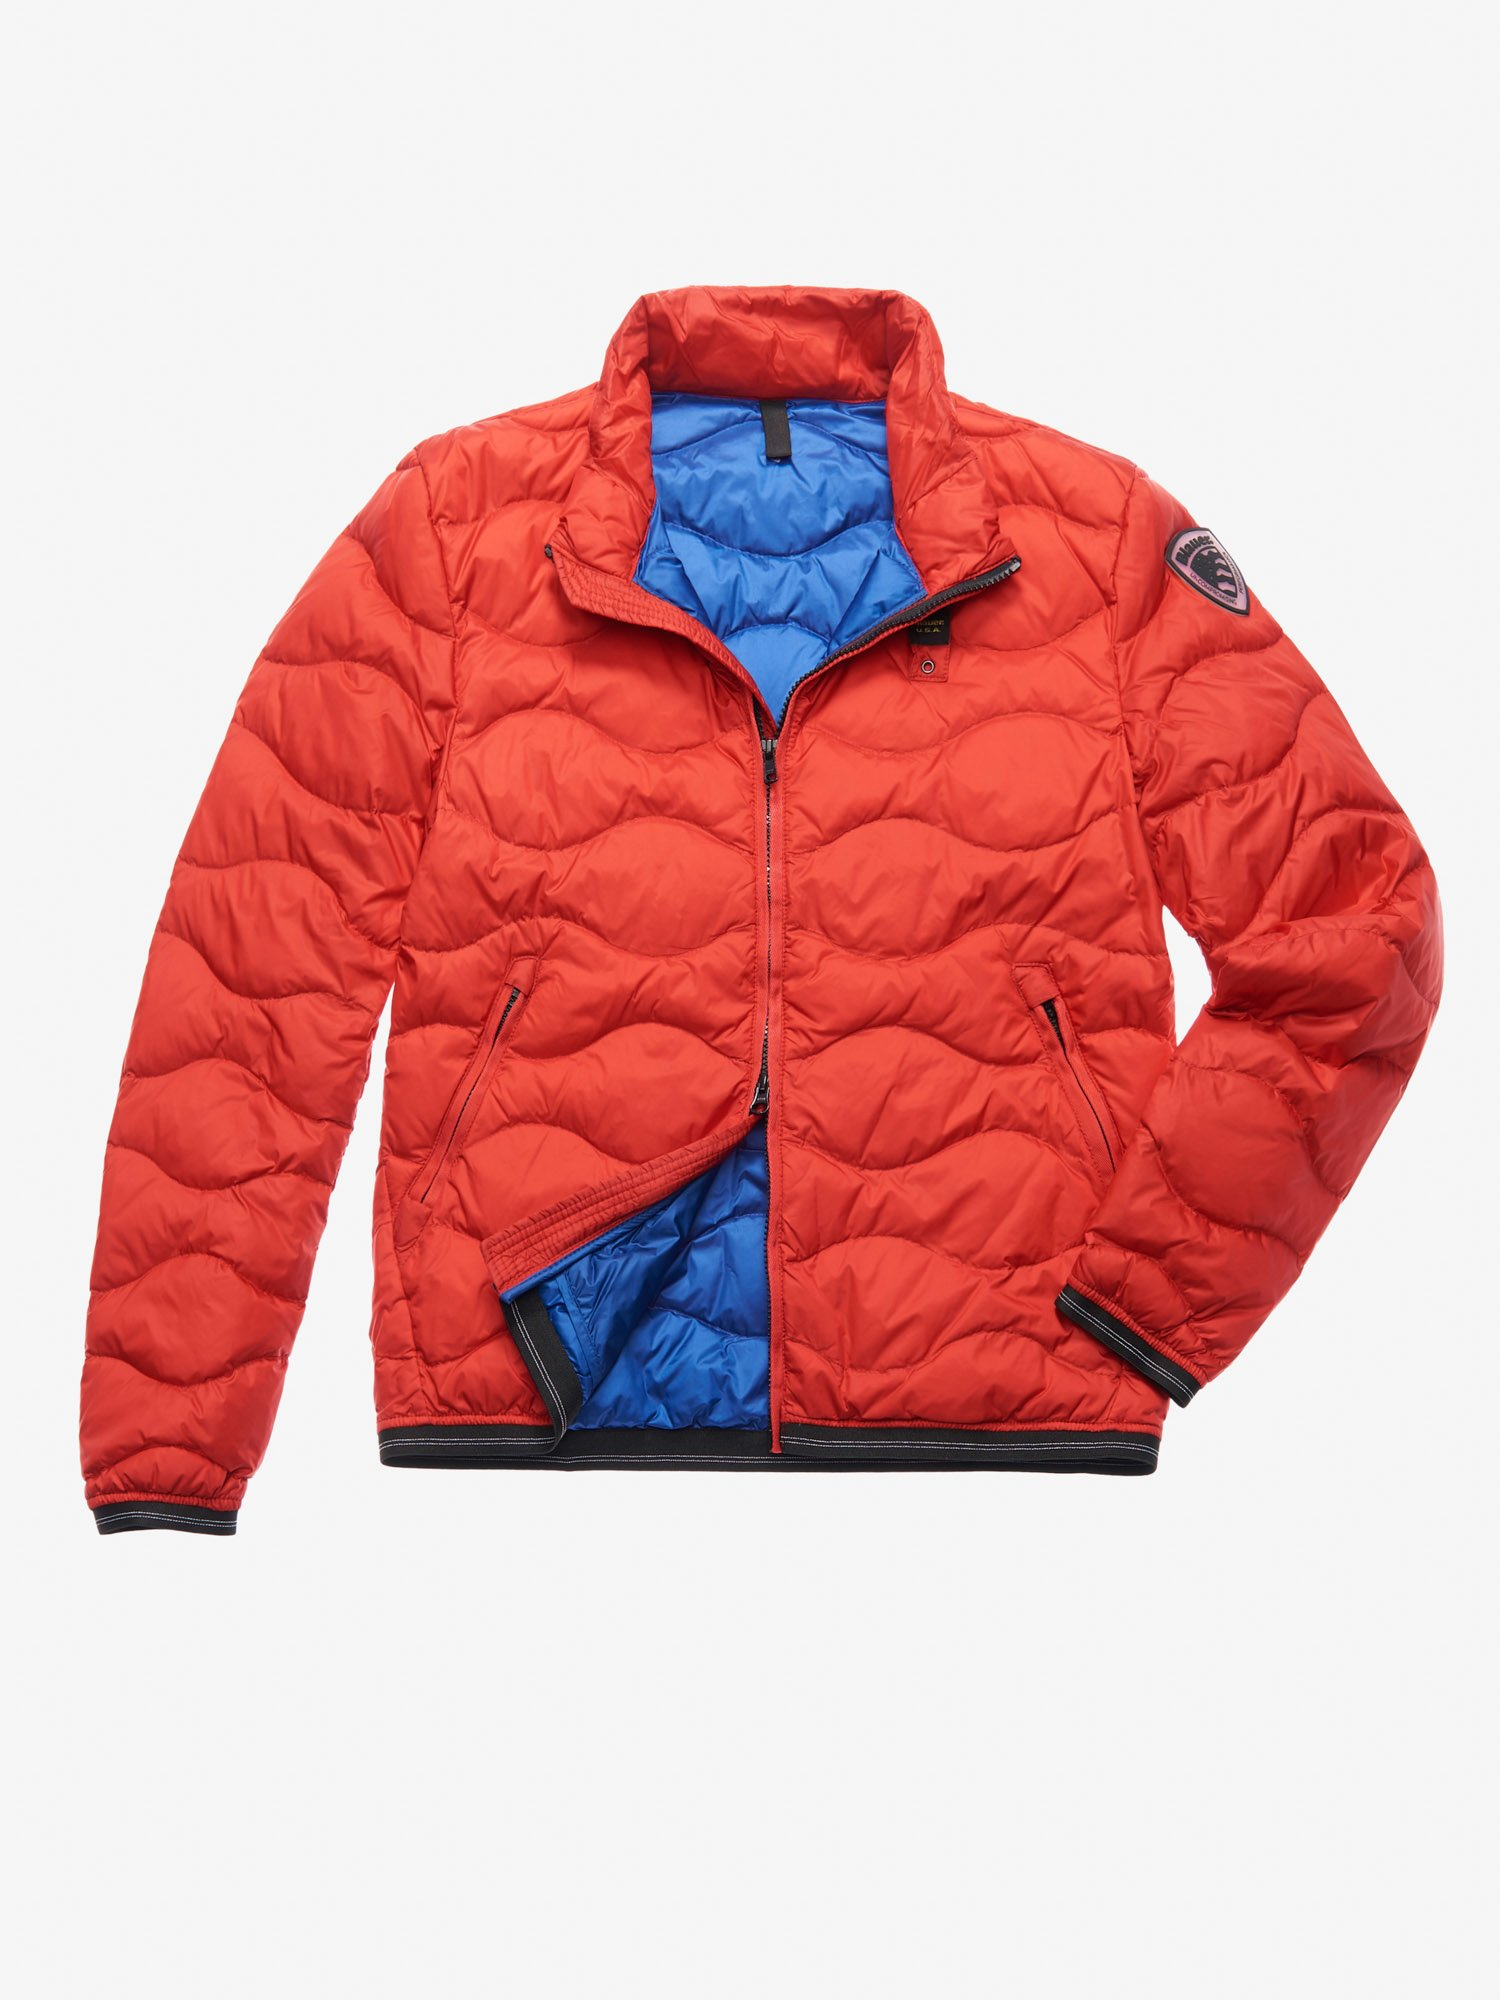 b73c031307 Blauer - HILL WAVE-QUILTED DOWN JACKET - Ginger Red Ins. Blue - 1 ...